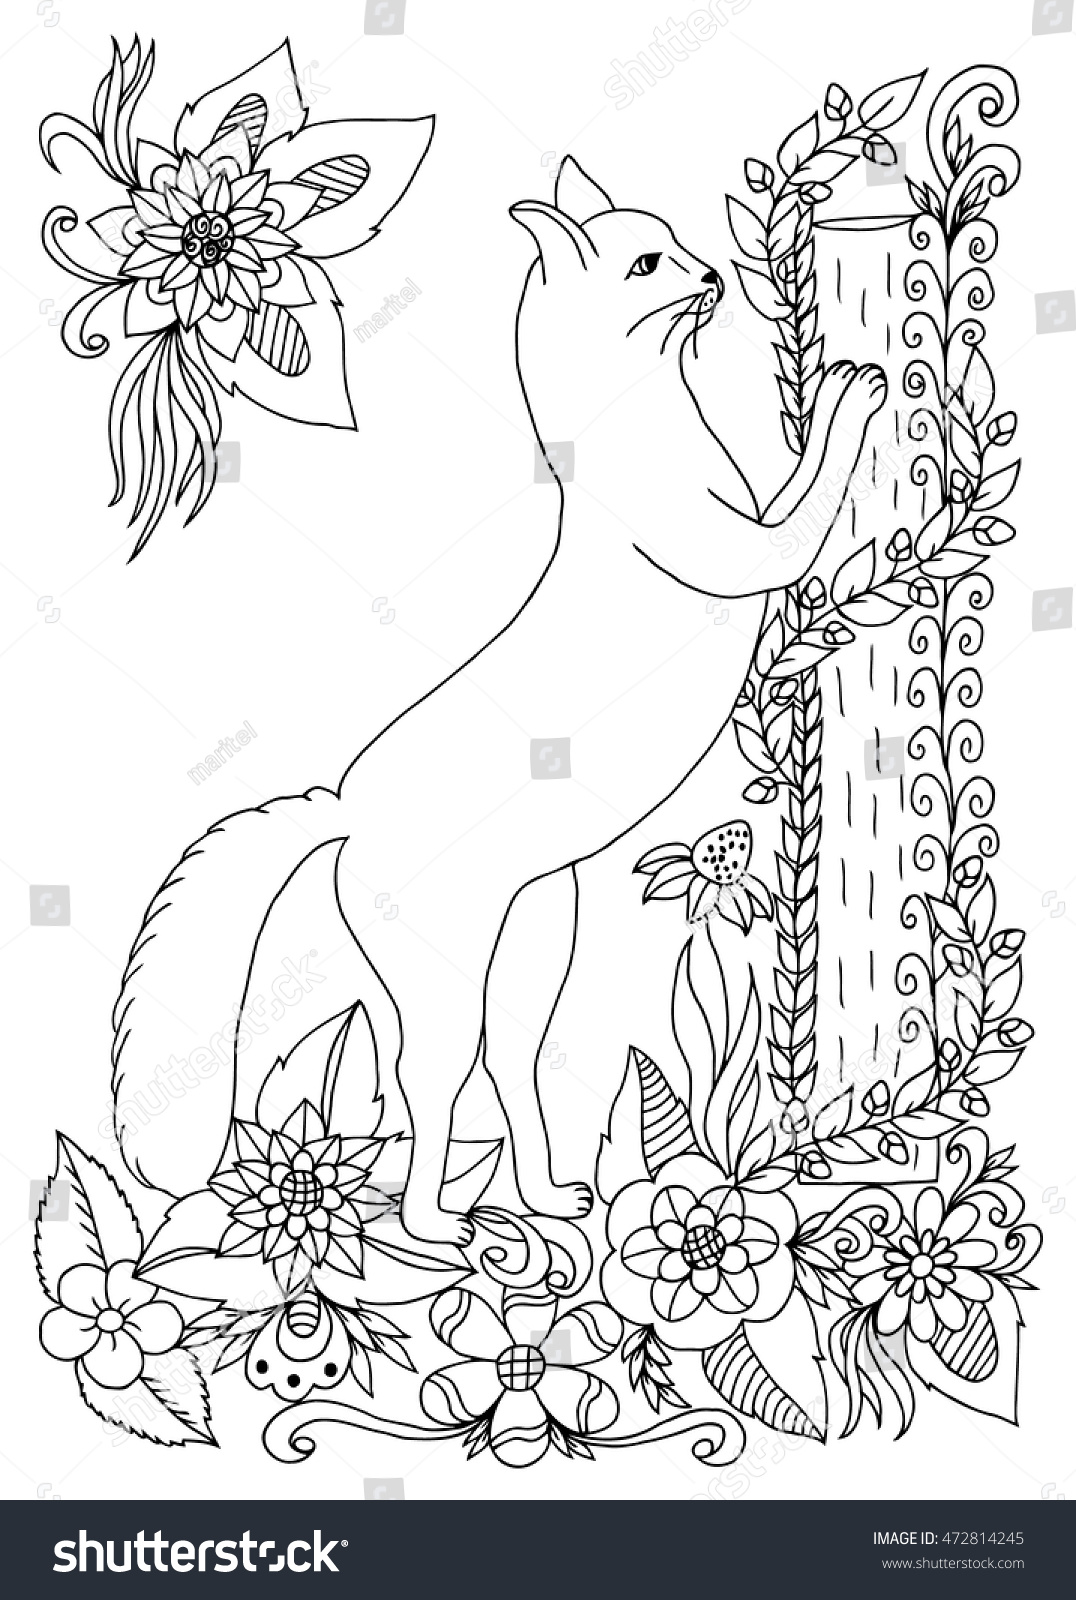 Vector Illustration Zen Tangle Cat Near A Log Among The Flowers Doodling Coloring Book